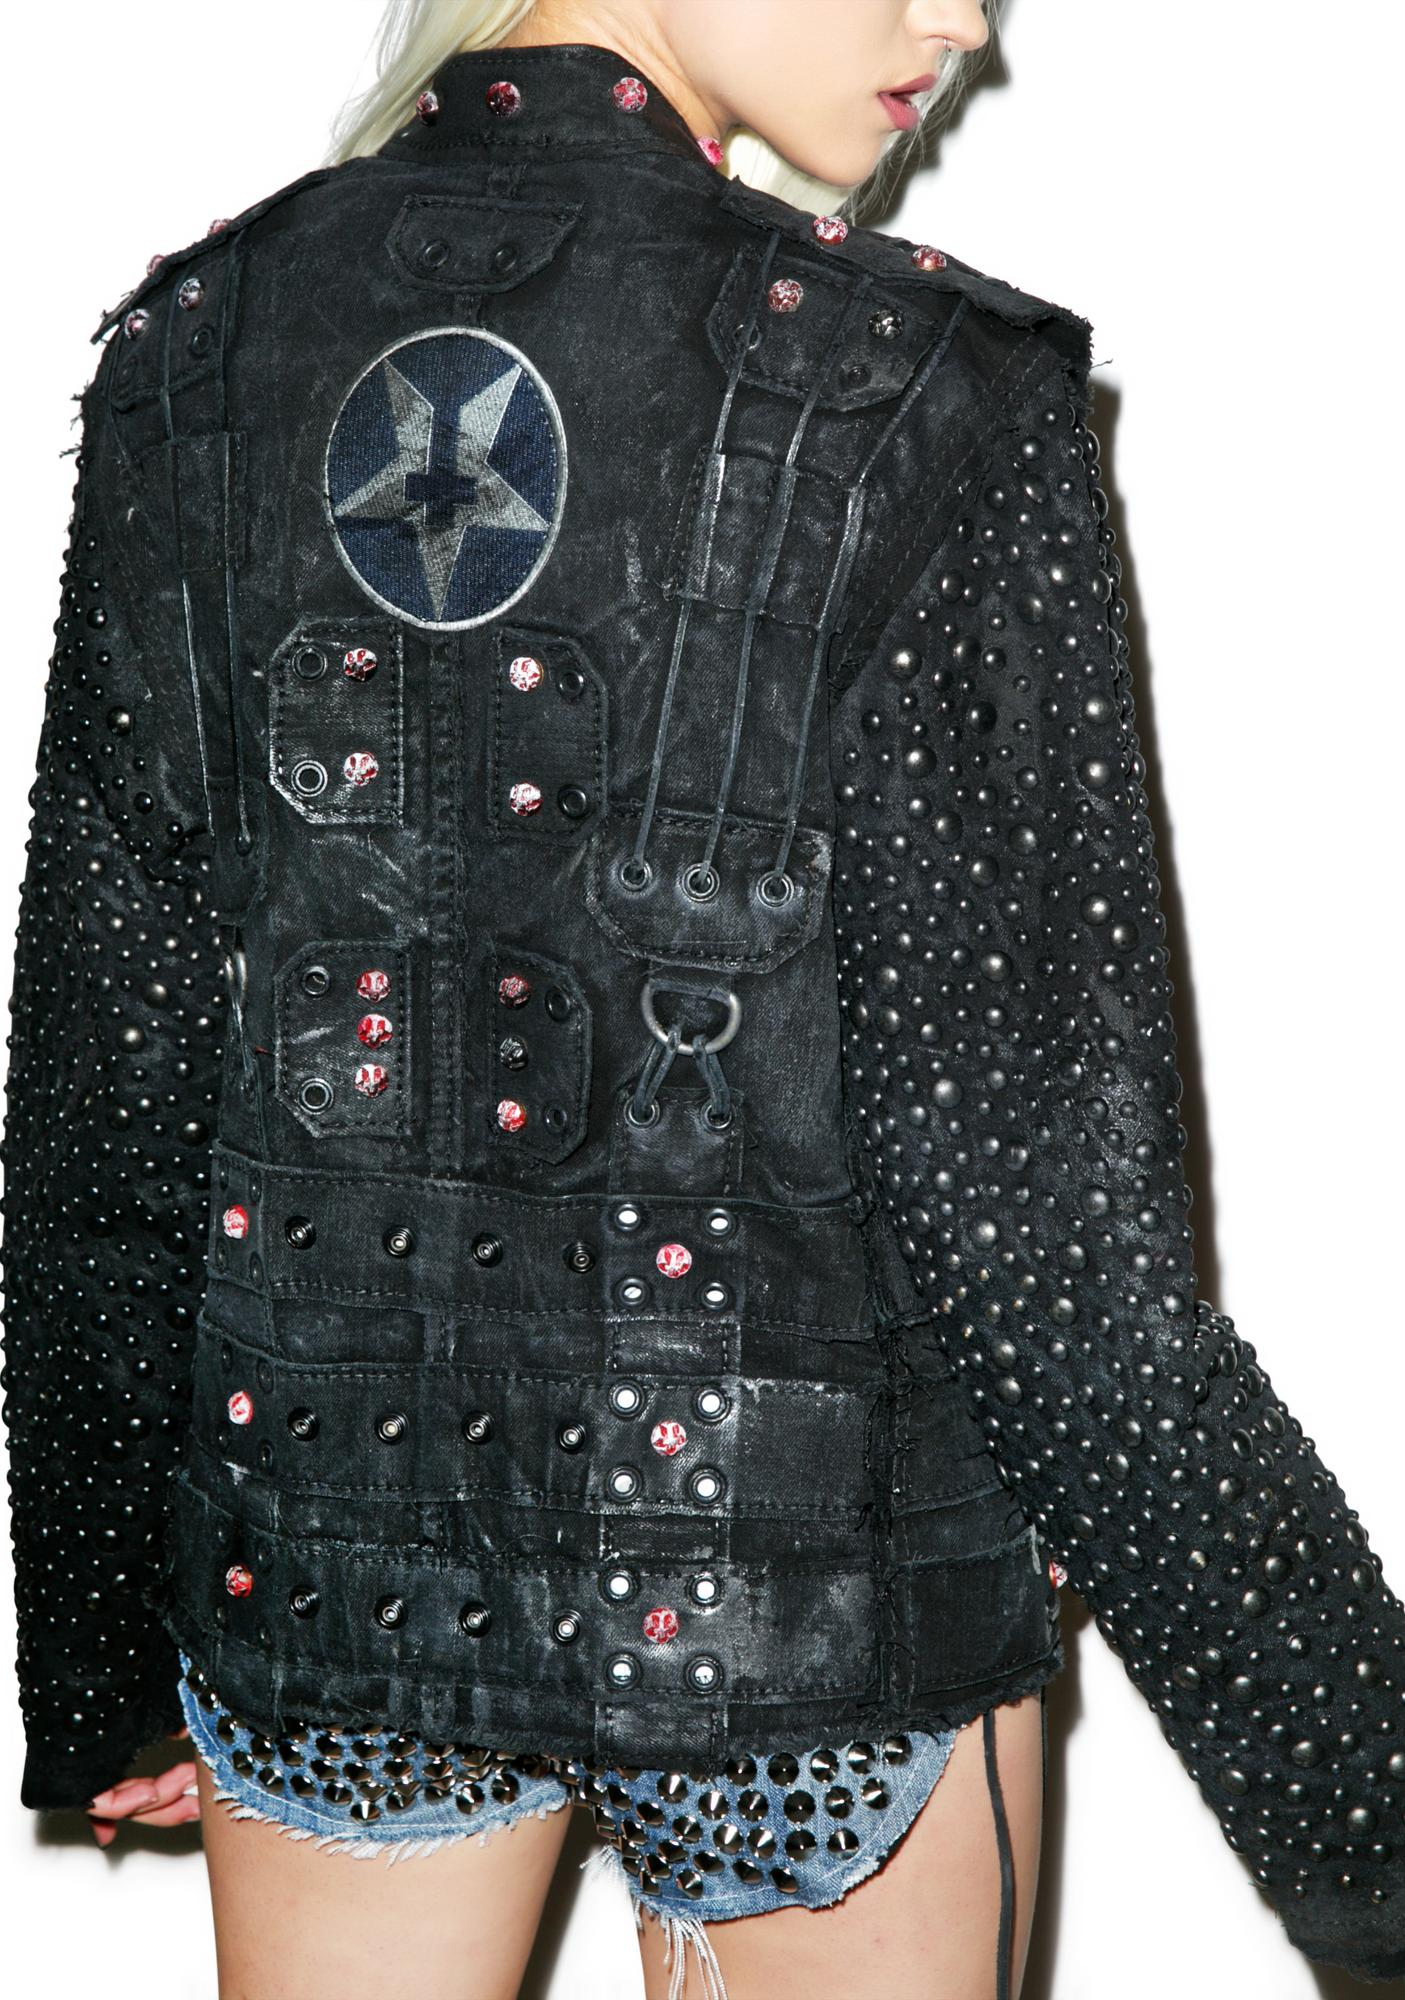 Junker Battlefield Jacket